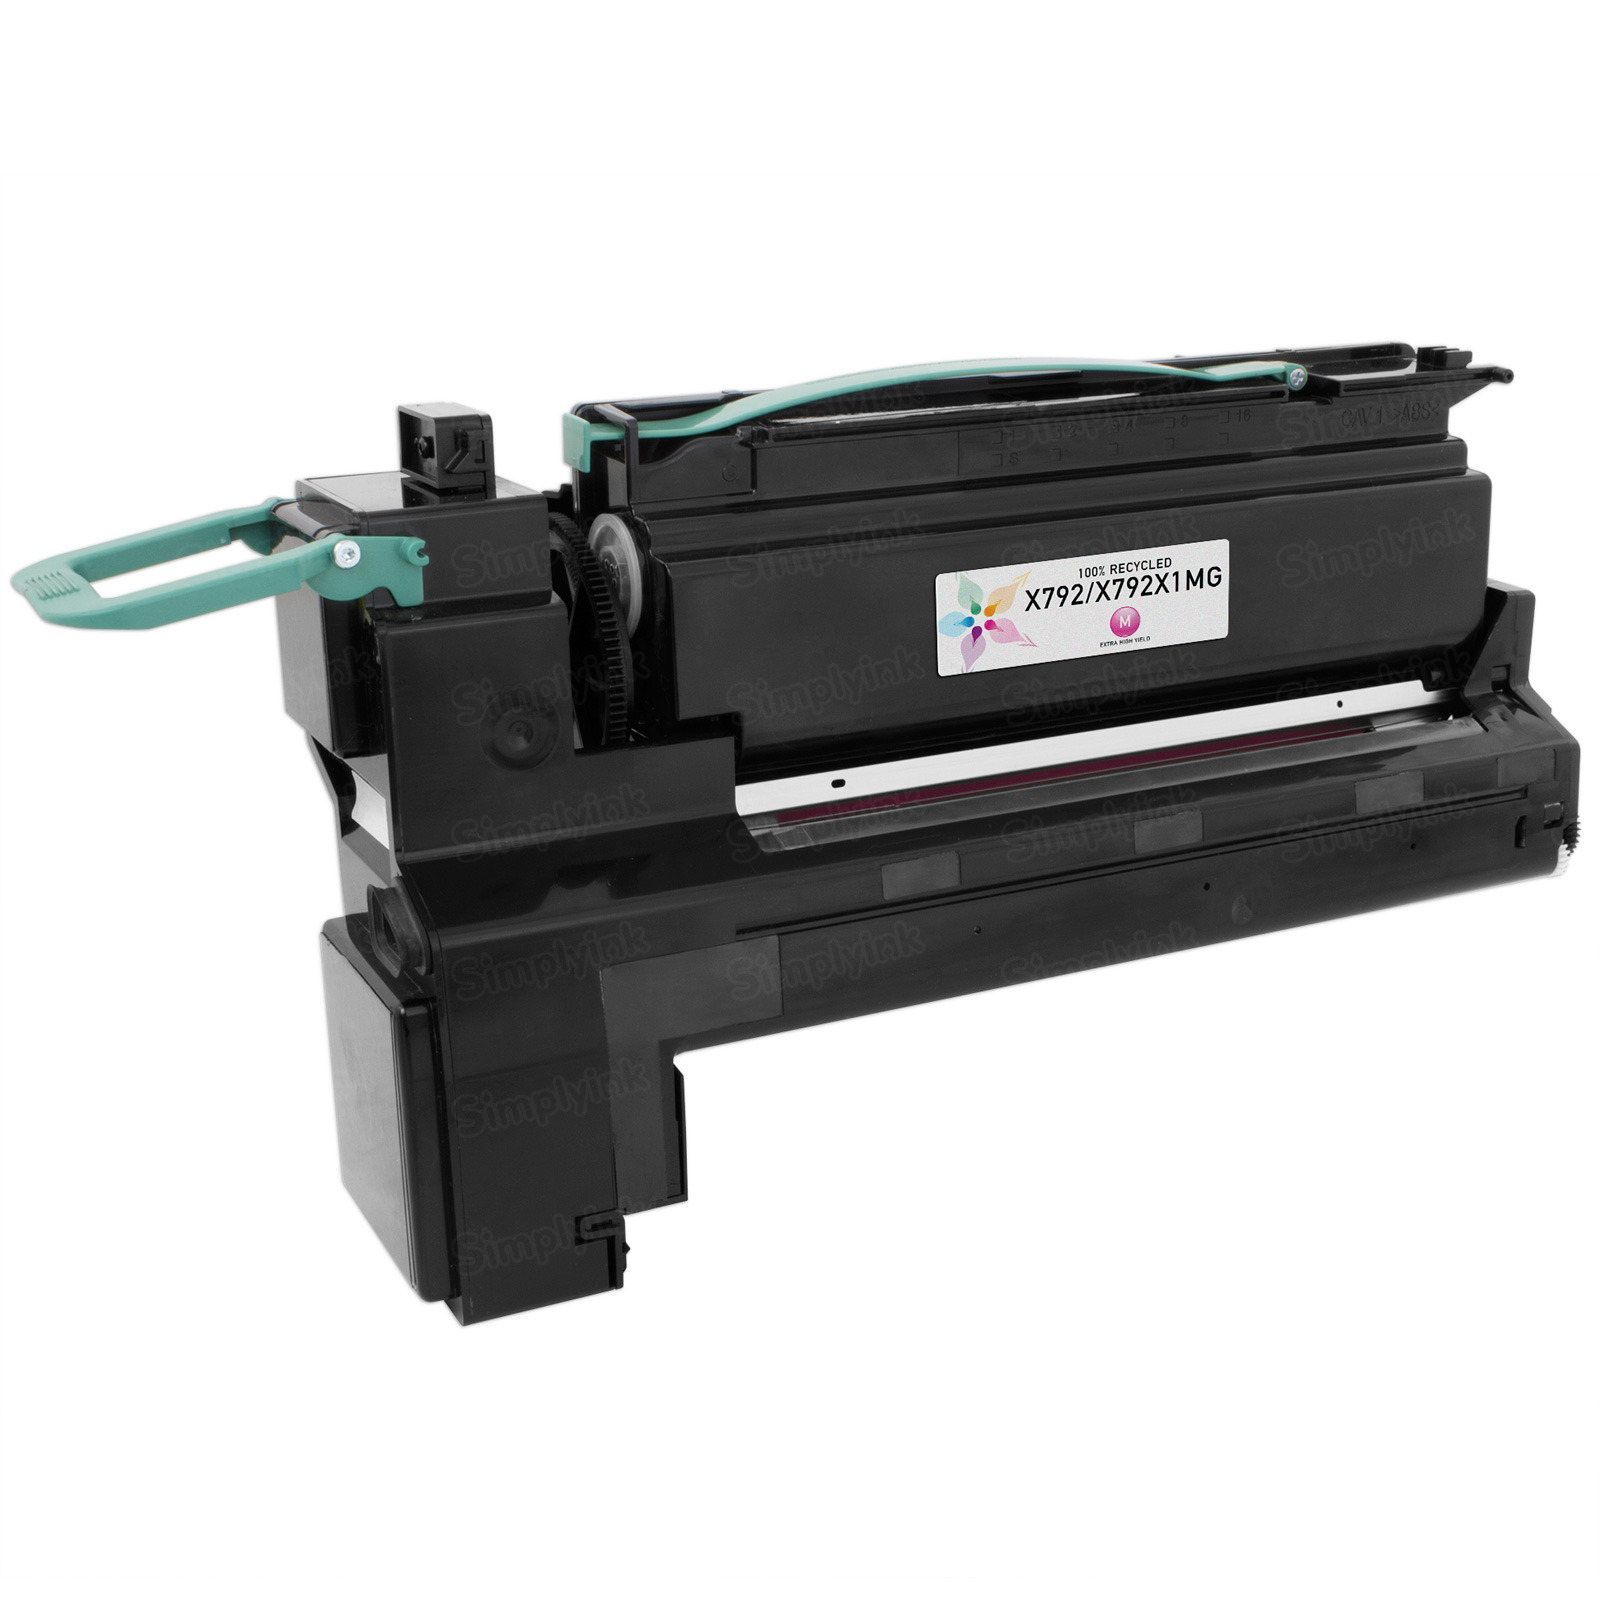 Lexmark Remanufactured Extra HY Magenta Toner, X792X1MG (X792)